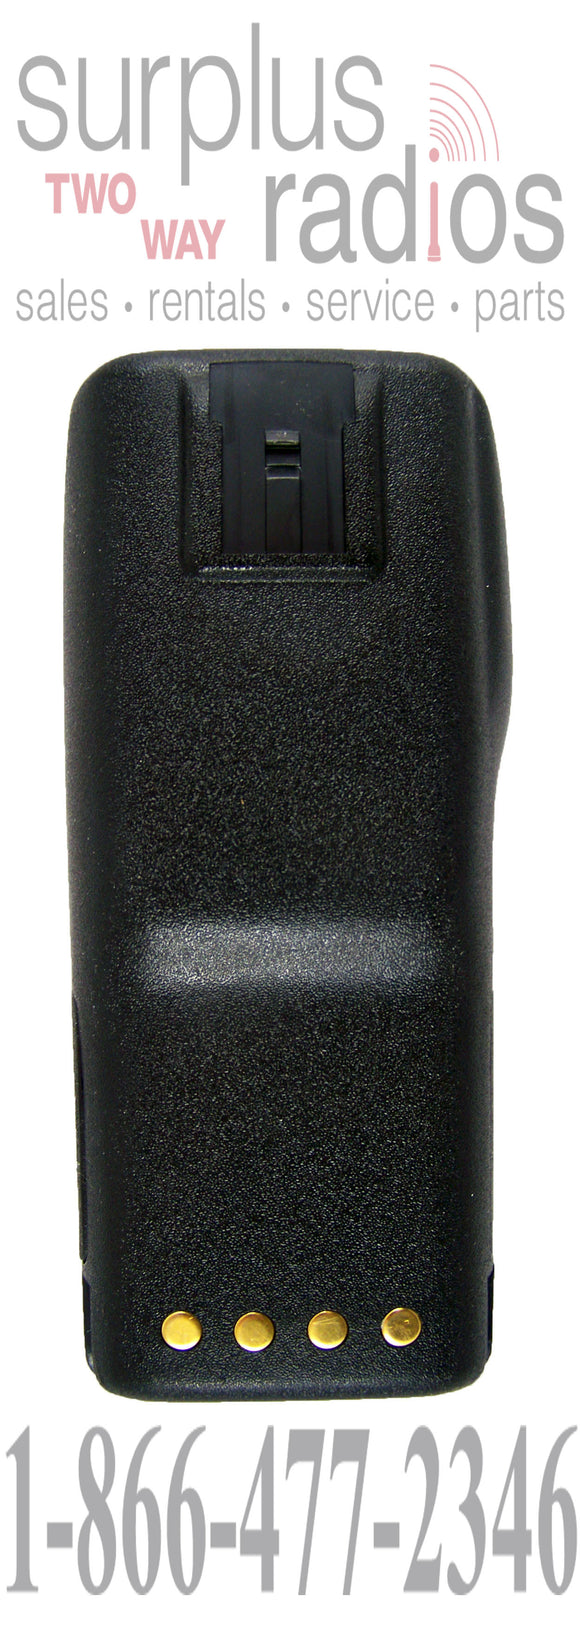 Battery B9360H1 for Motorola GP350 radios